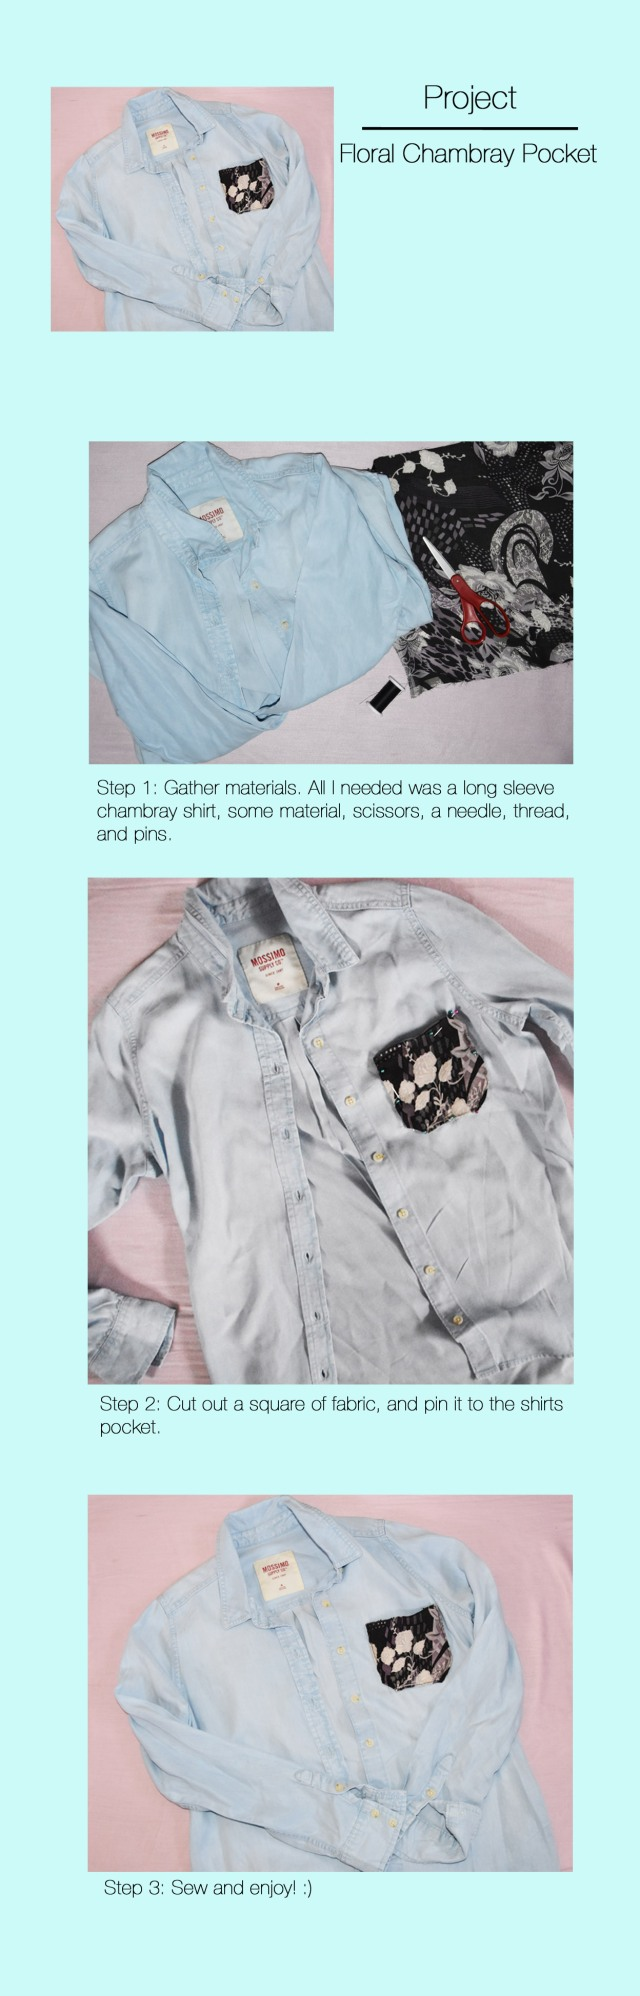 Floral Chambray pocket